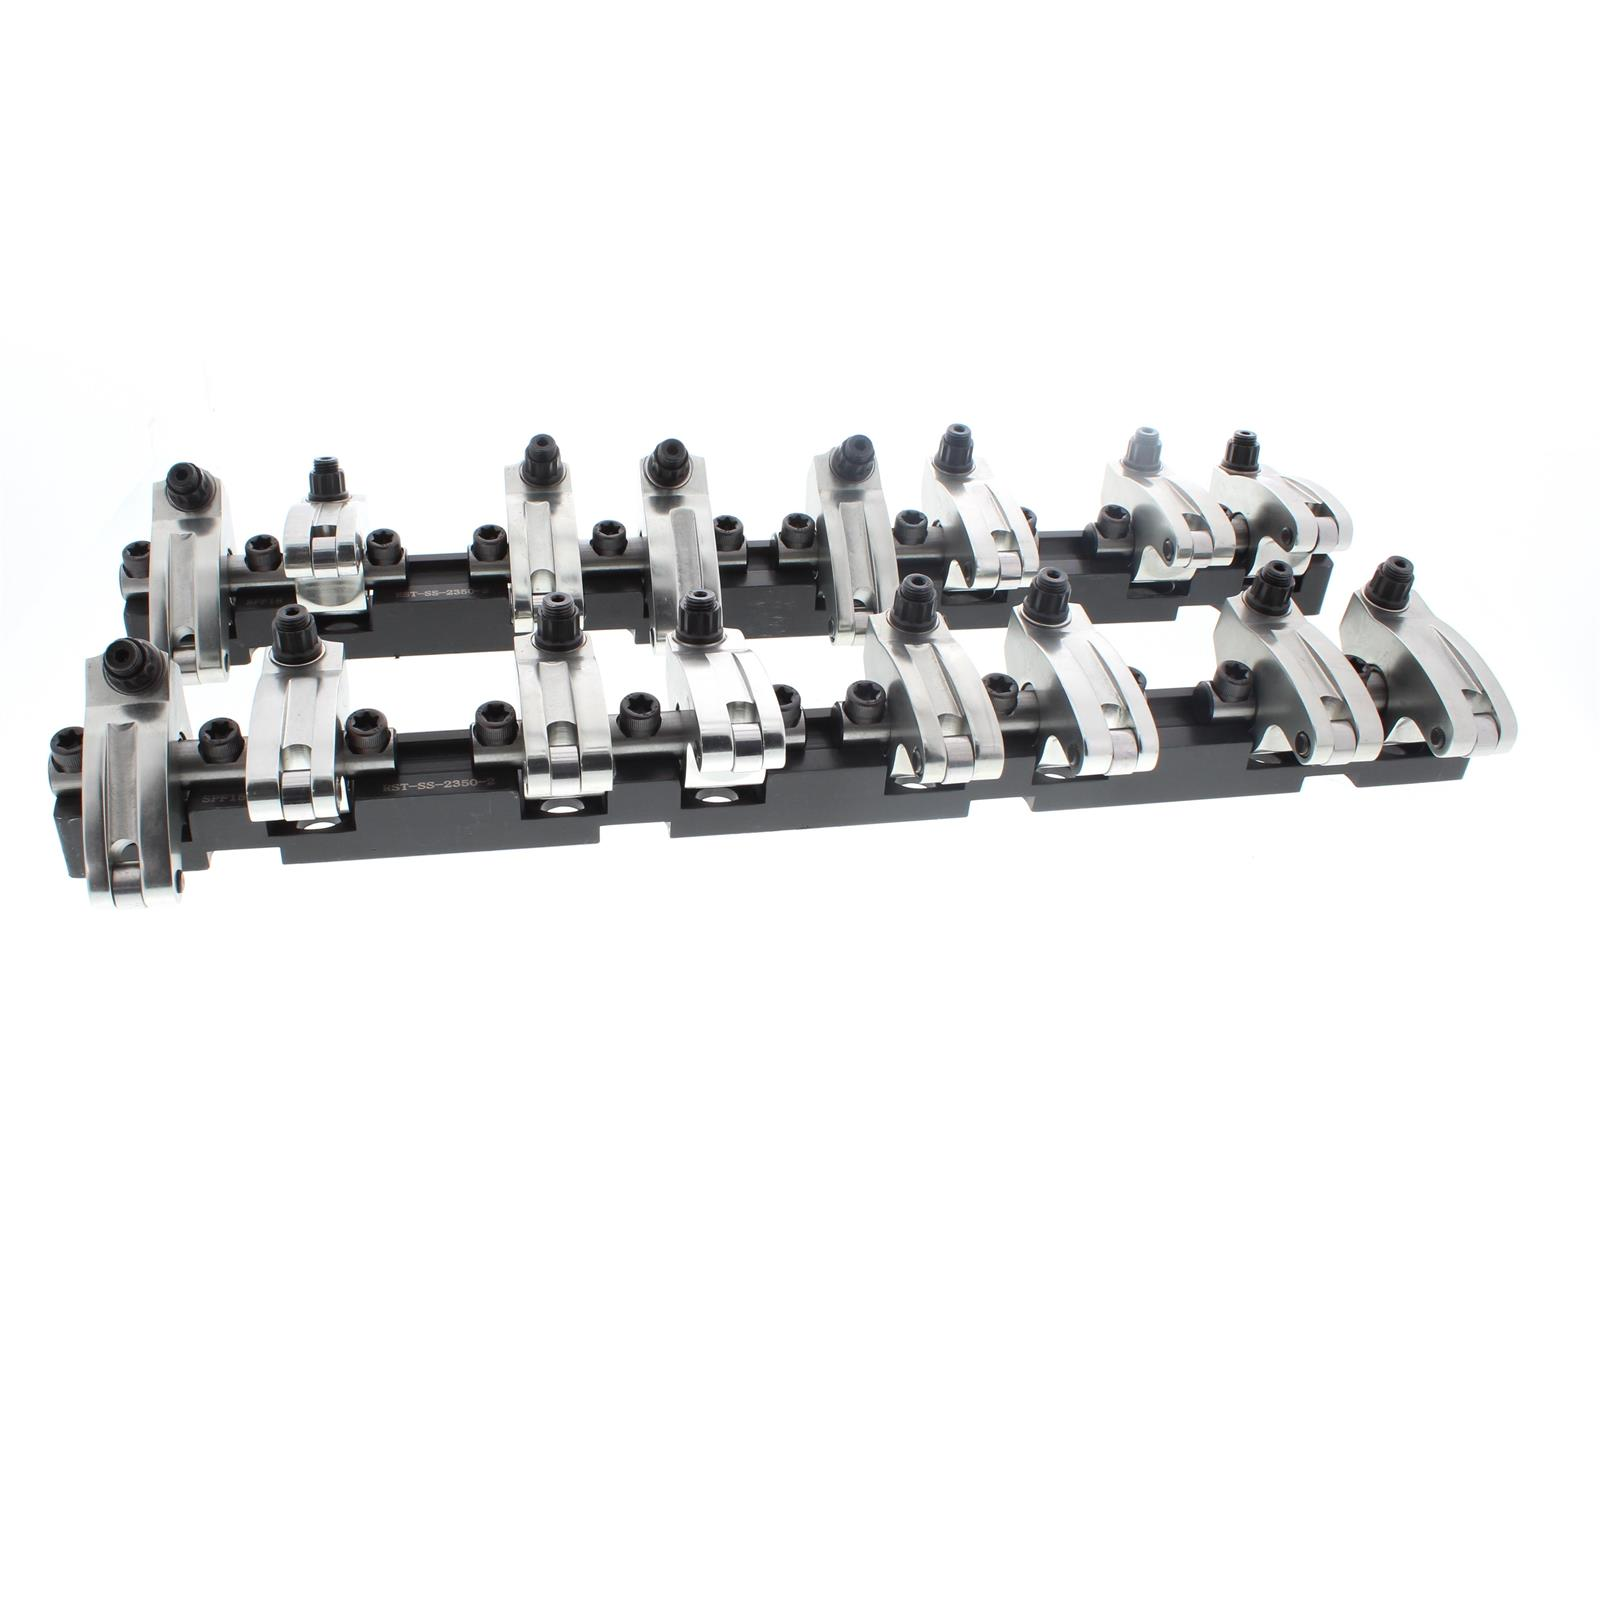 GM Performance Parts Roller Rocker Arm Kit SBC 1.5 Ratio